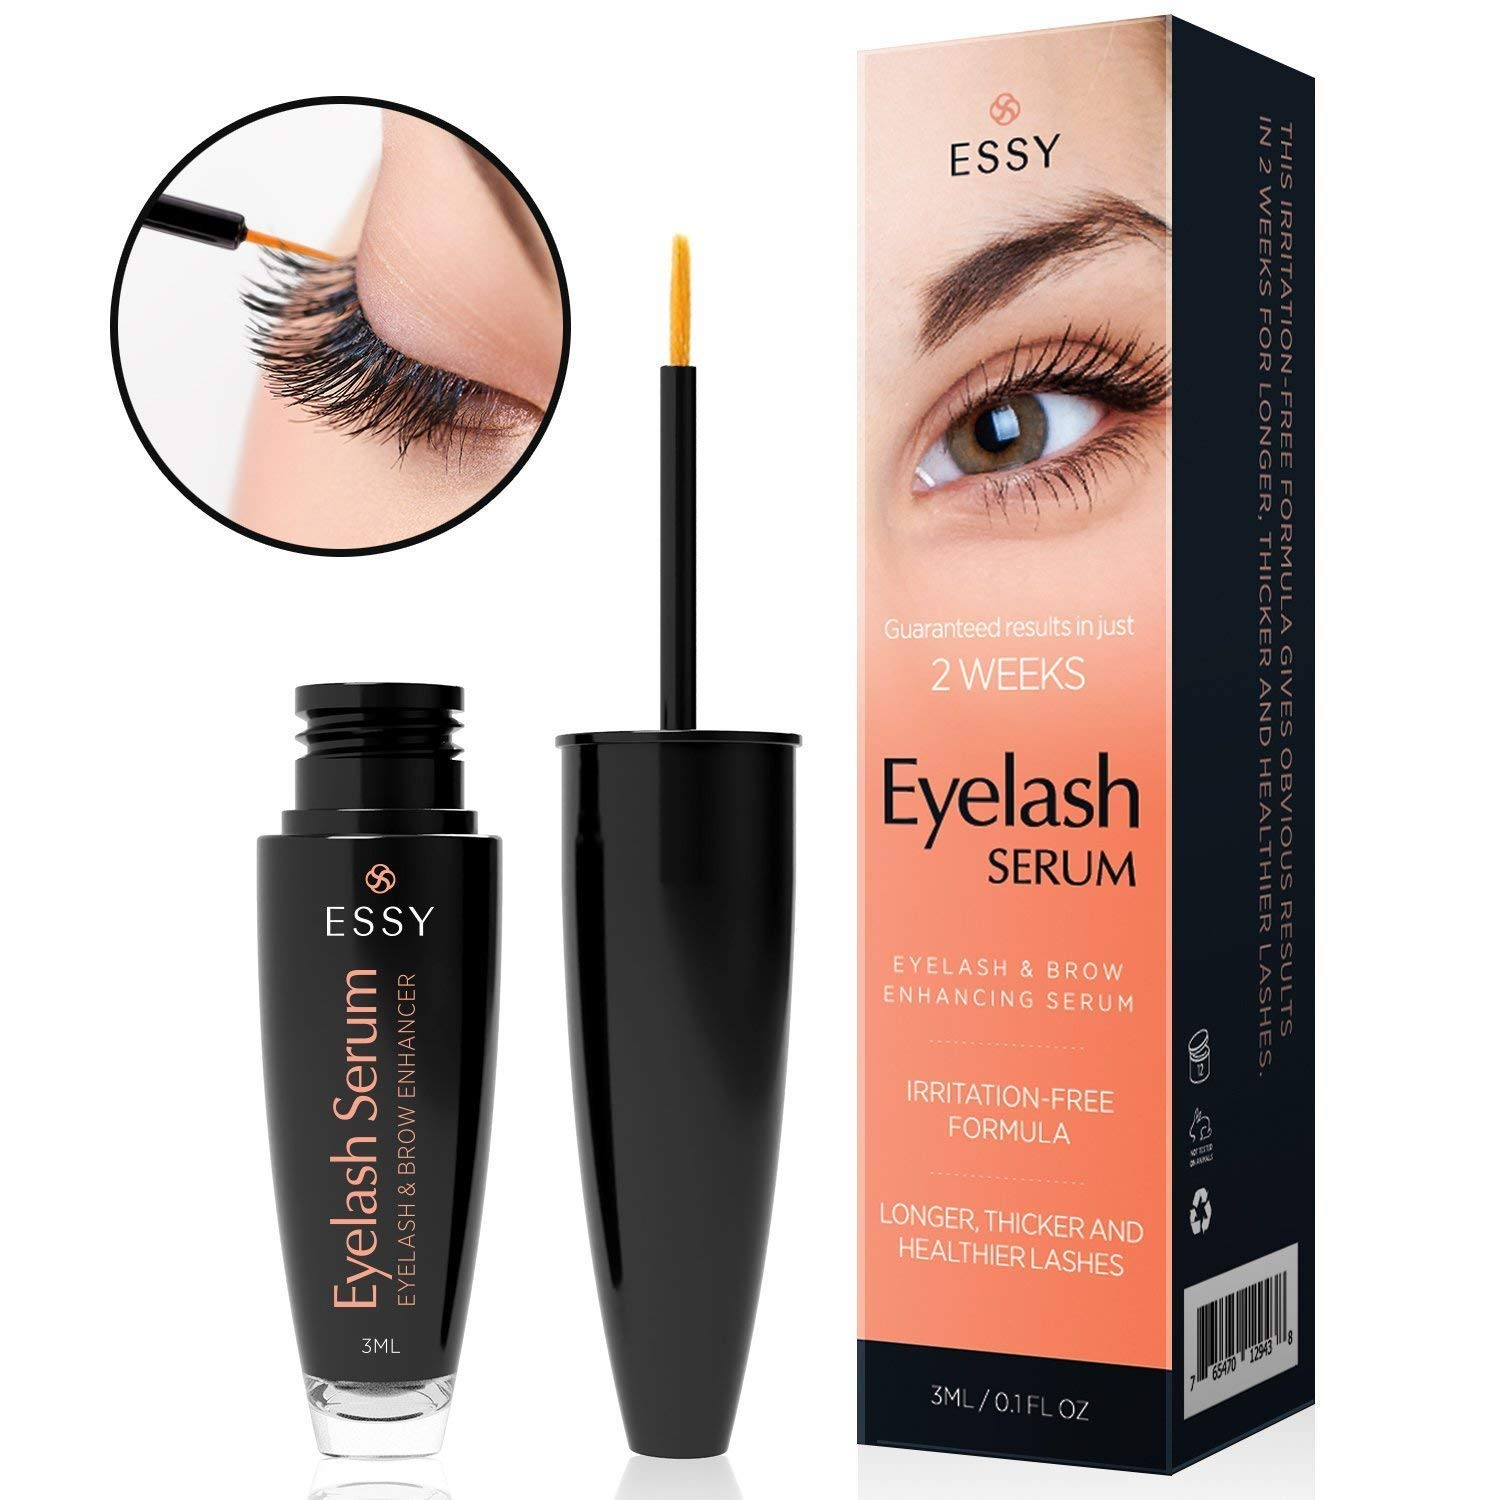 Essy Eyelash Growth Serum for Lash and Brow Irritation Free Formula (3ML)